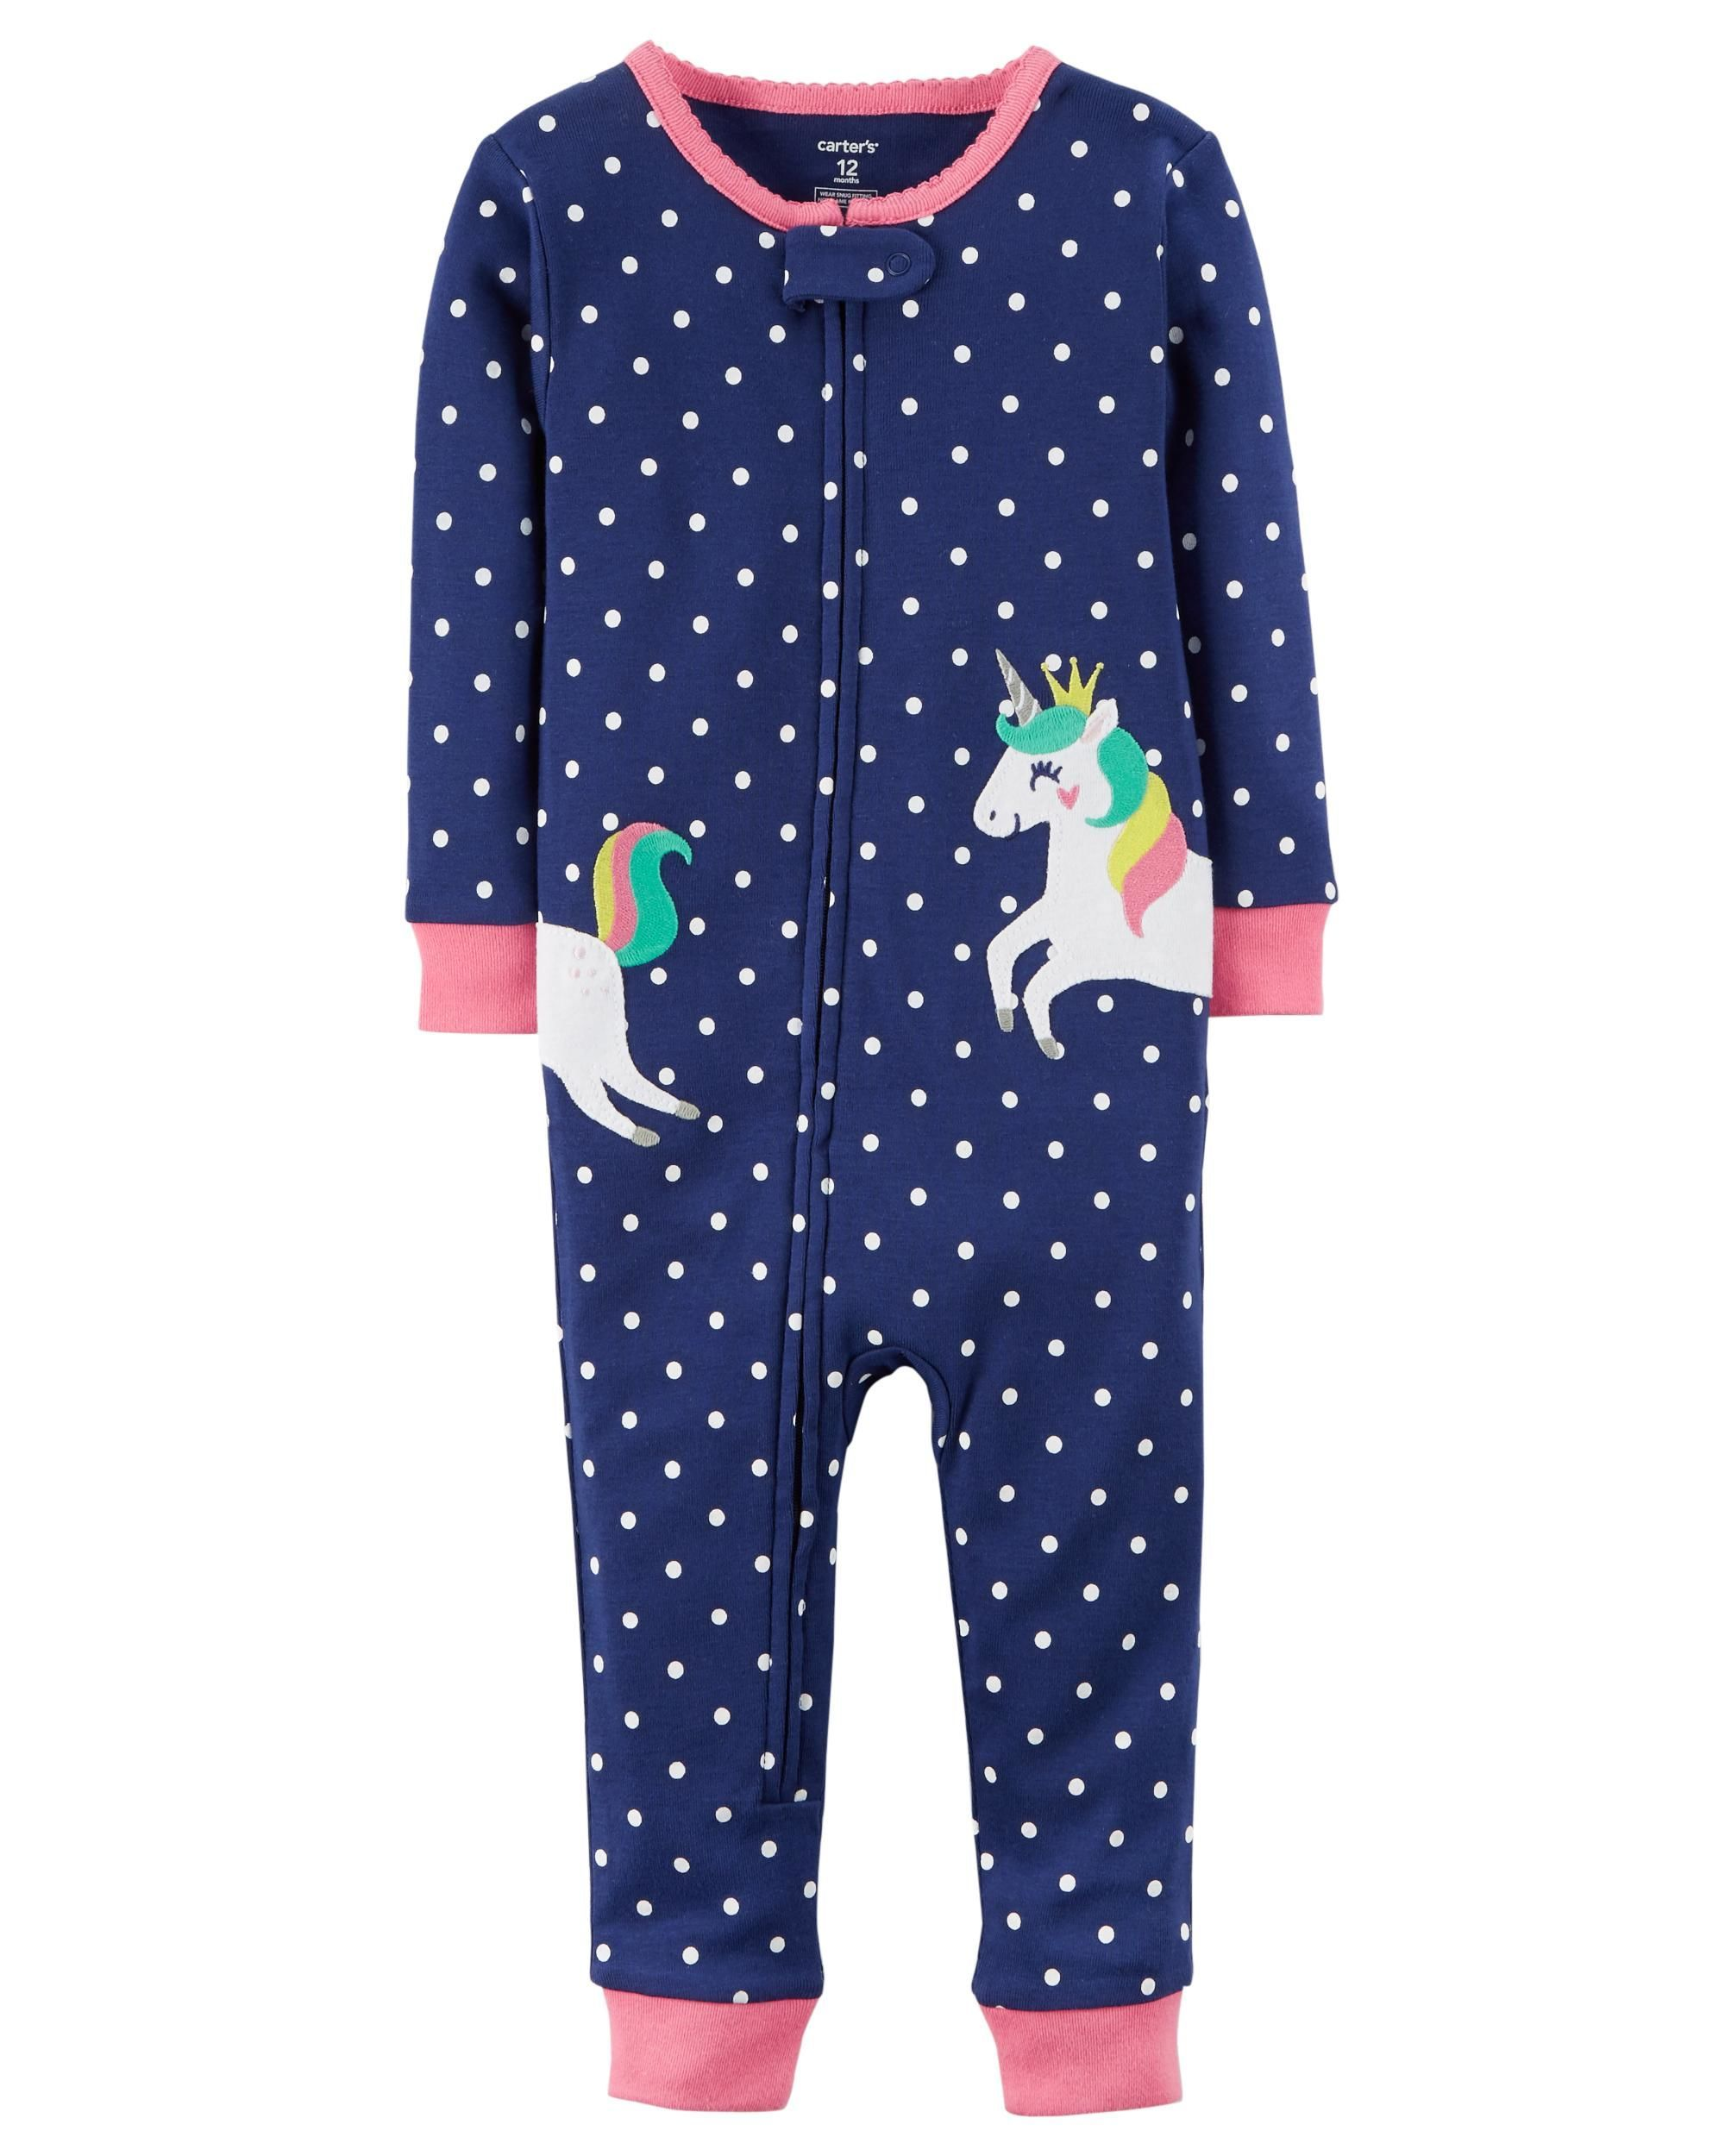 ffcea181e 1-Piece Unicorn Snug Fit Cotton Footless PJs